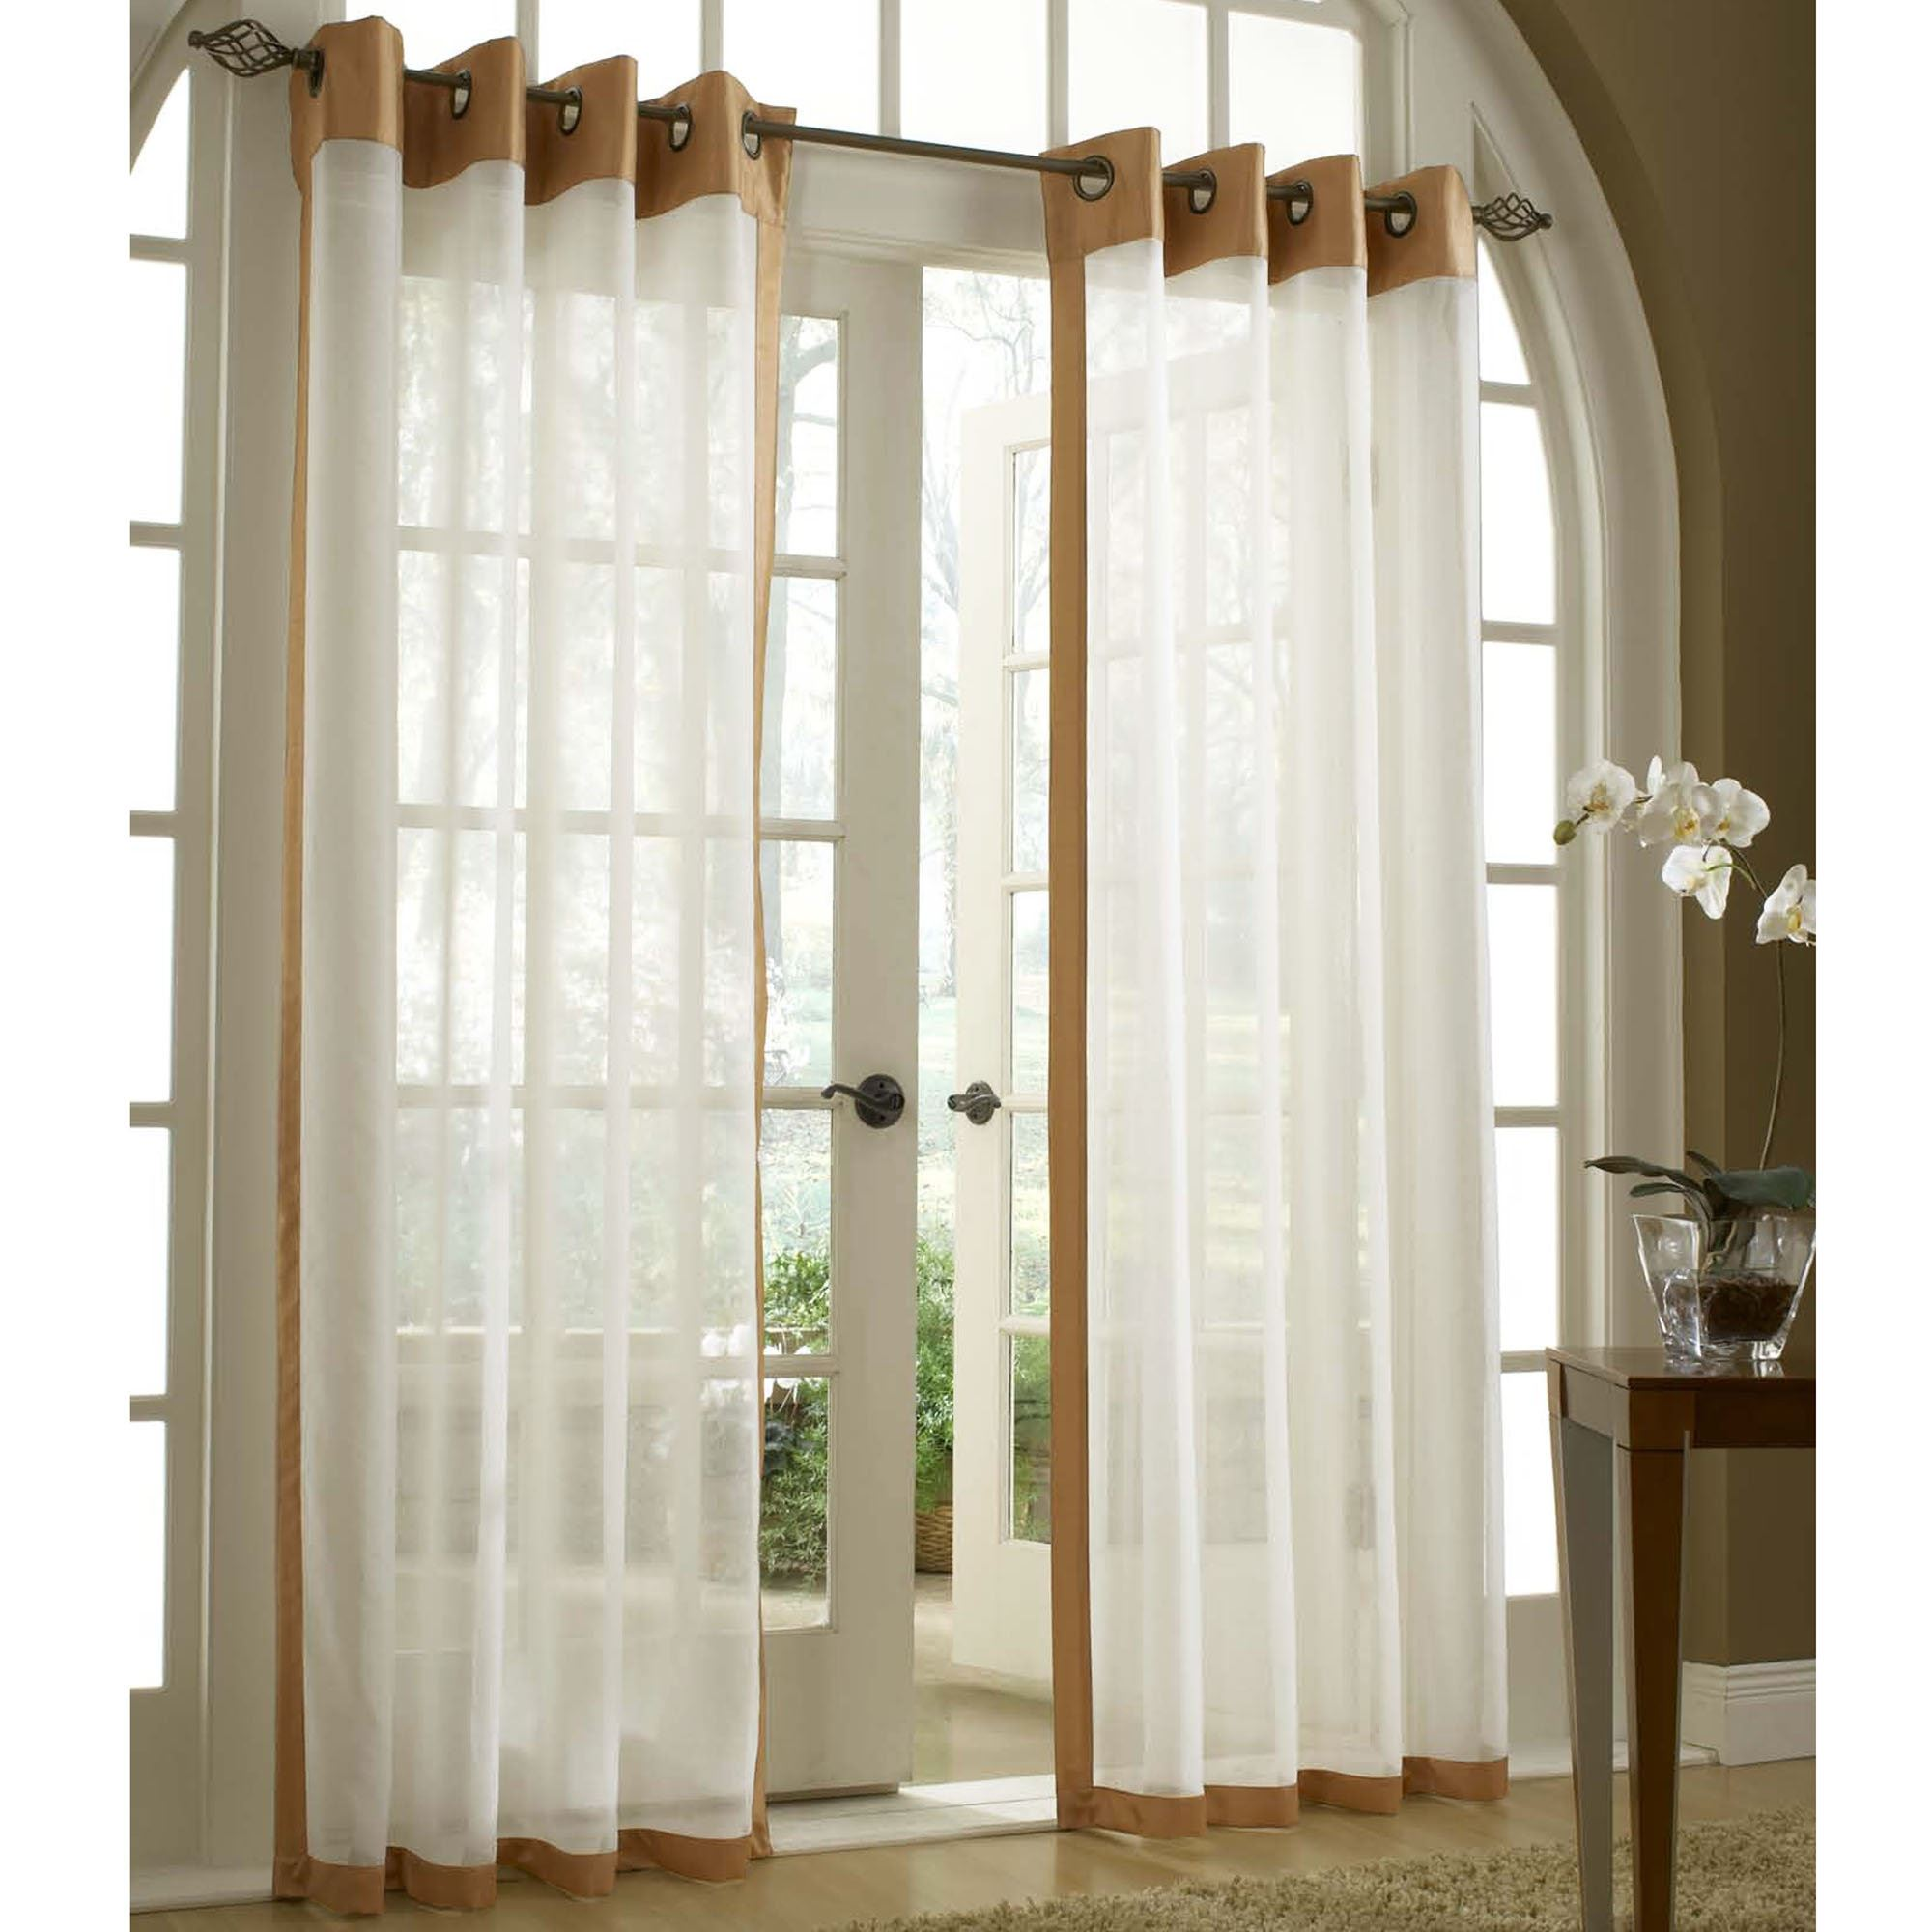 curtains grommets ideas home of charter gromments with curtain image